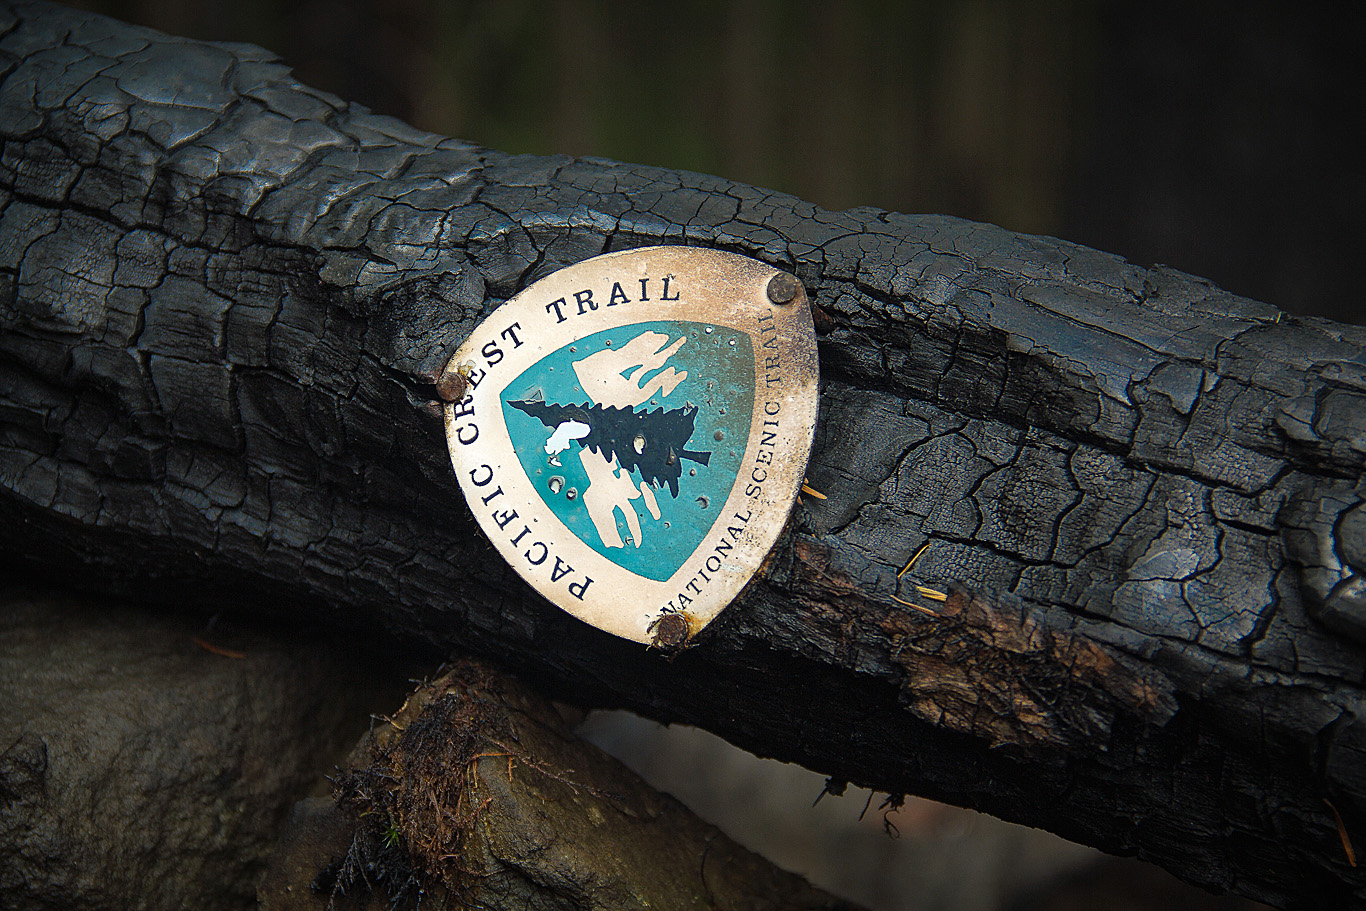 burn area safety information for the pacific crest trail